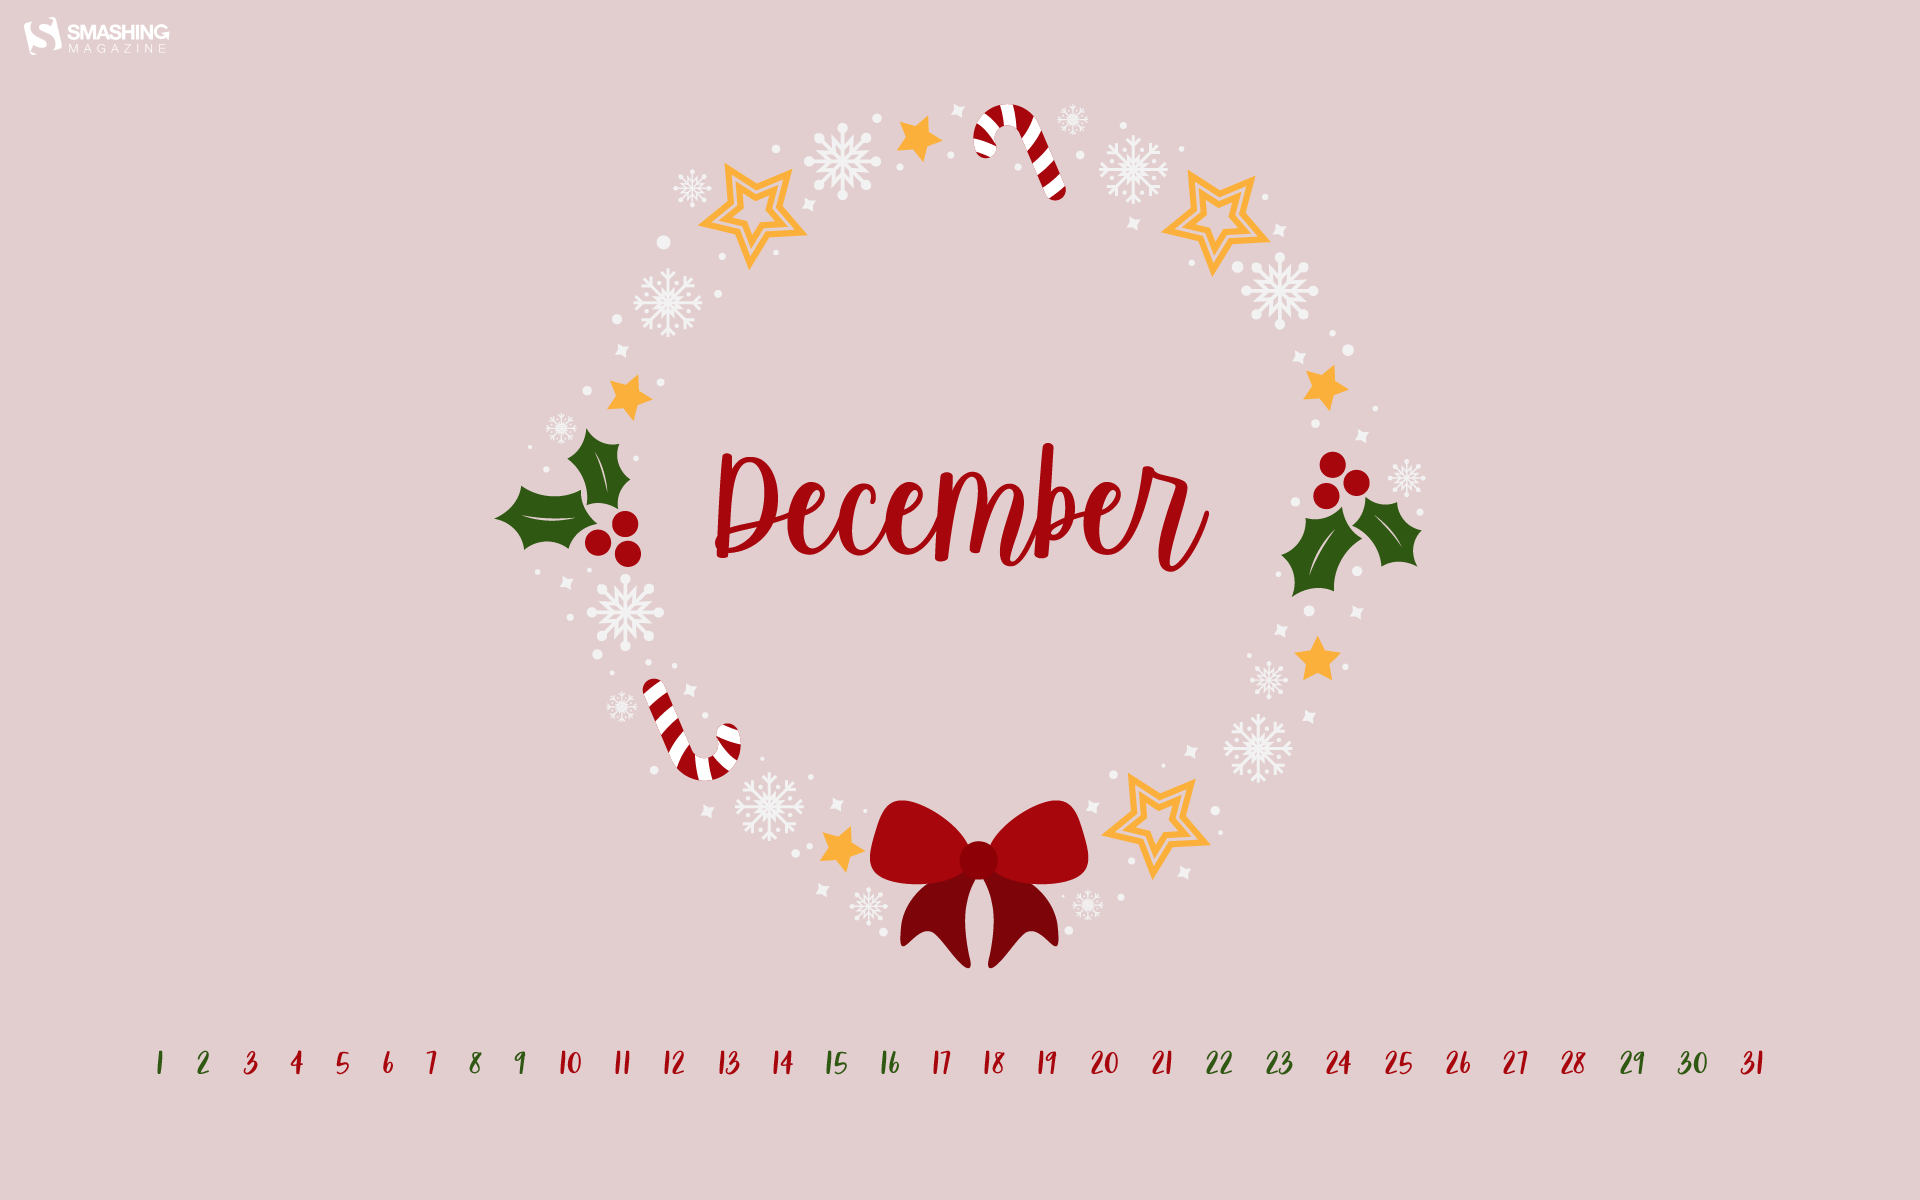 Christmas Graphic Design.It S Beginning To Look A Lot Like December 2018 Wallpapers